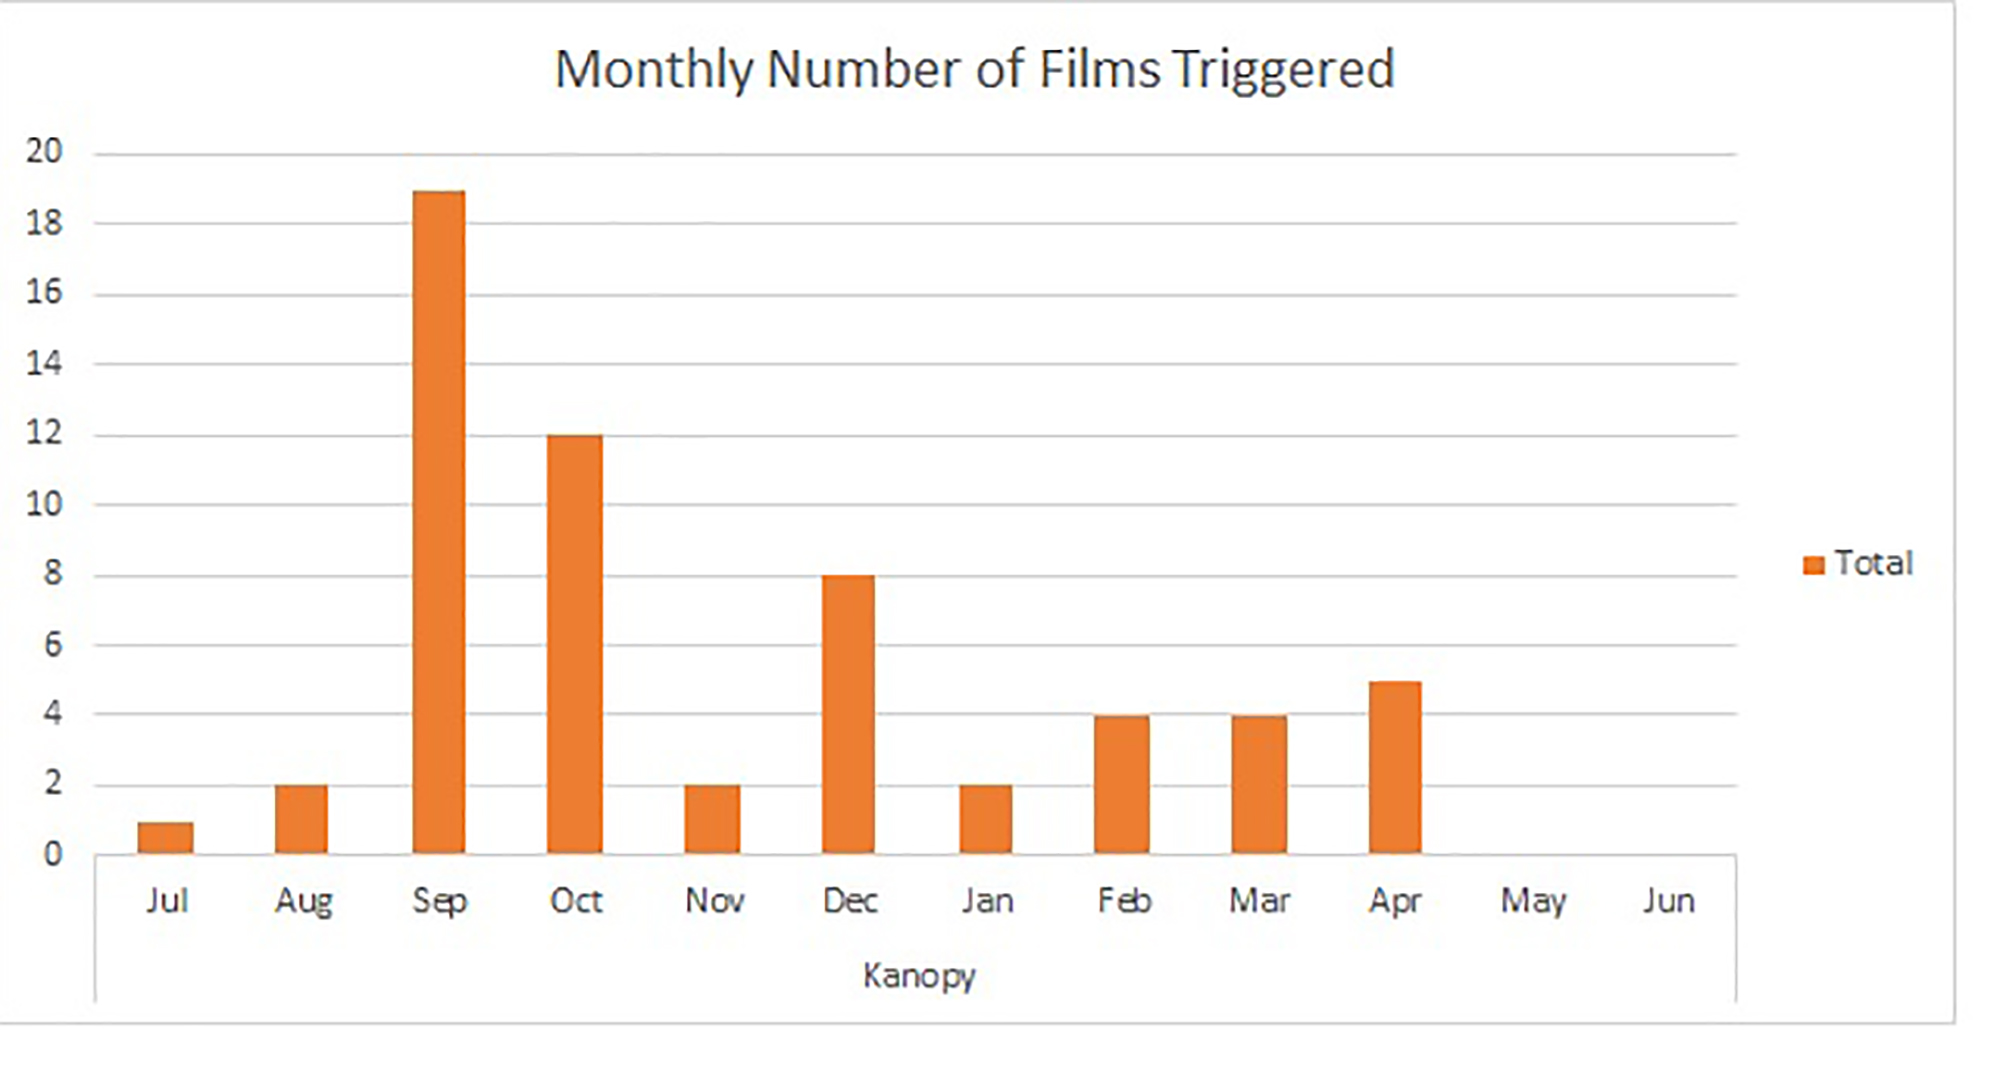 Figure 1. Monthly number of films triggered.